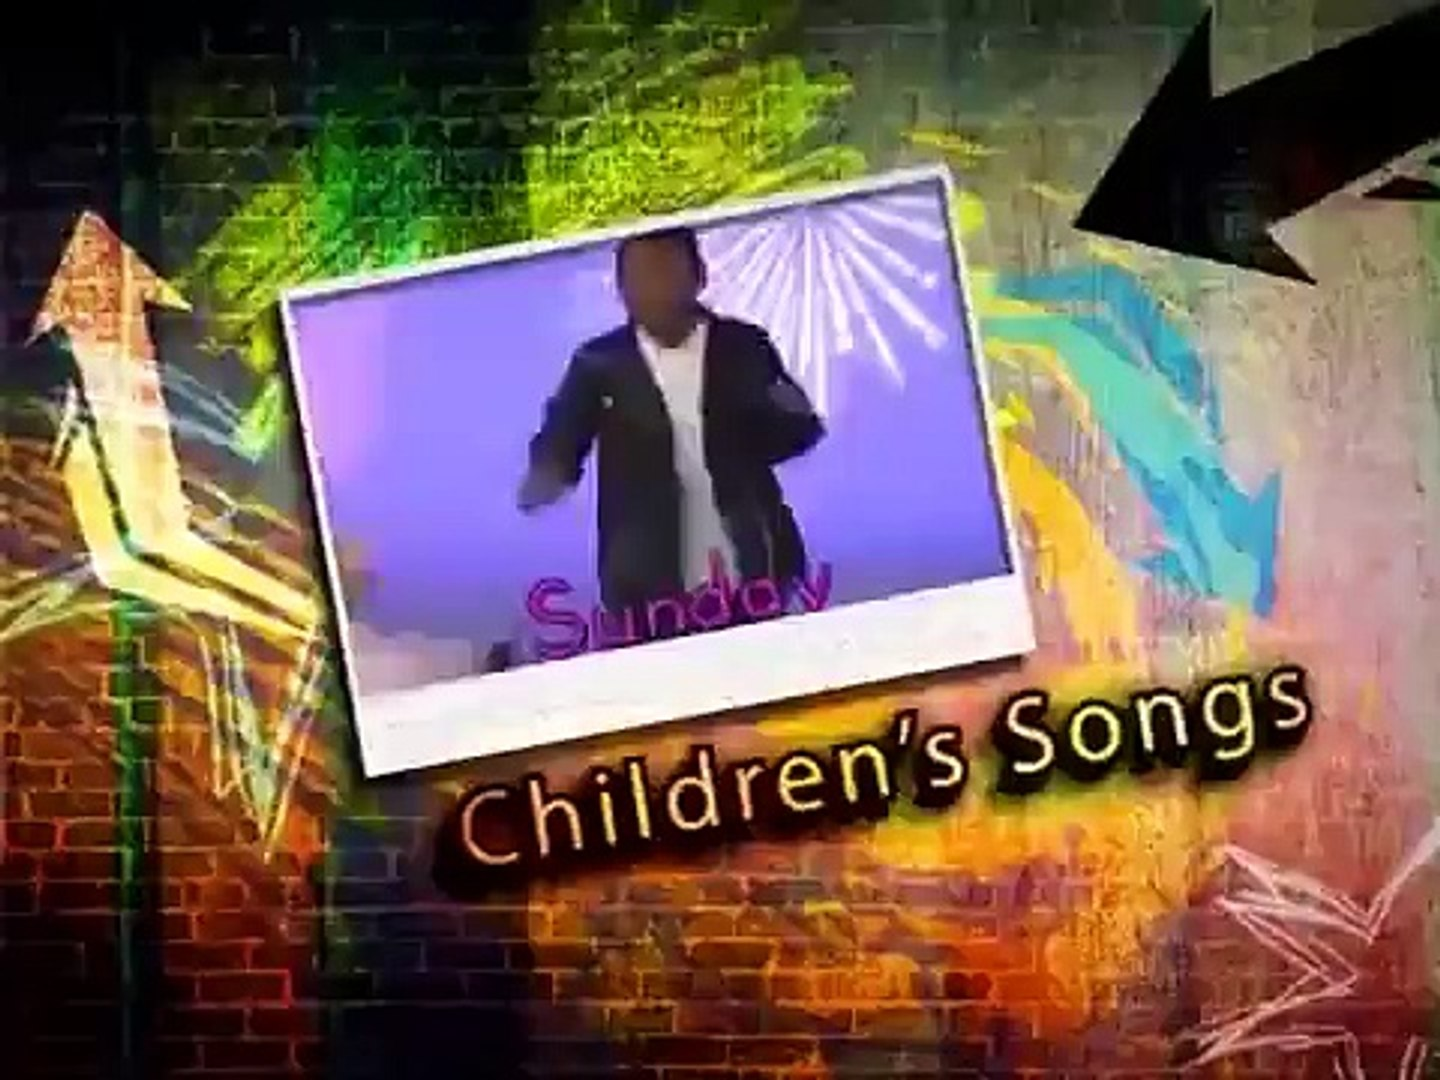 Count to 120 | Count to 120 Song | Educational Songs | Math Songs | Counting Songs | Jack